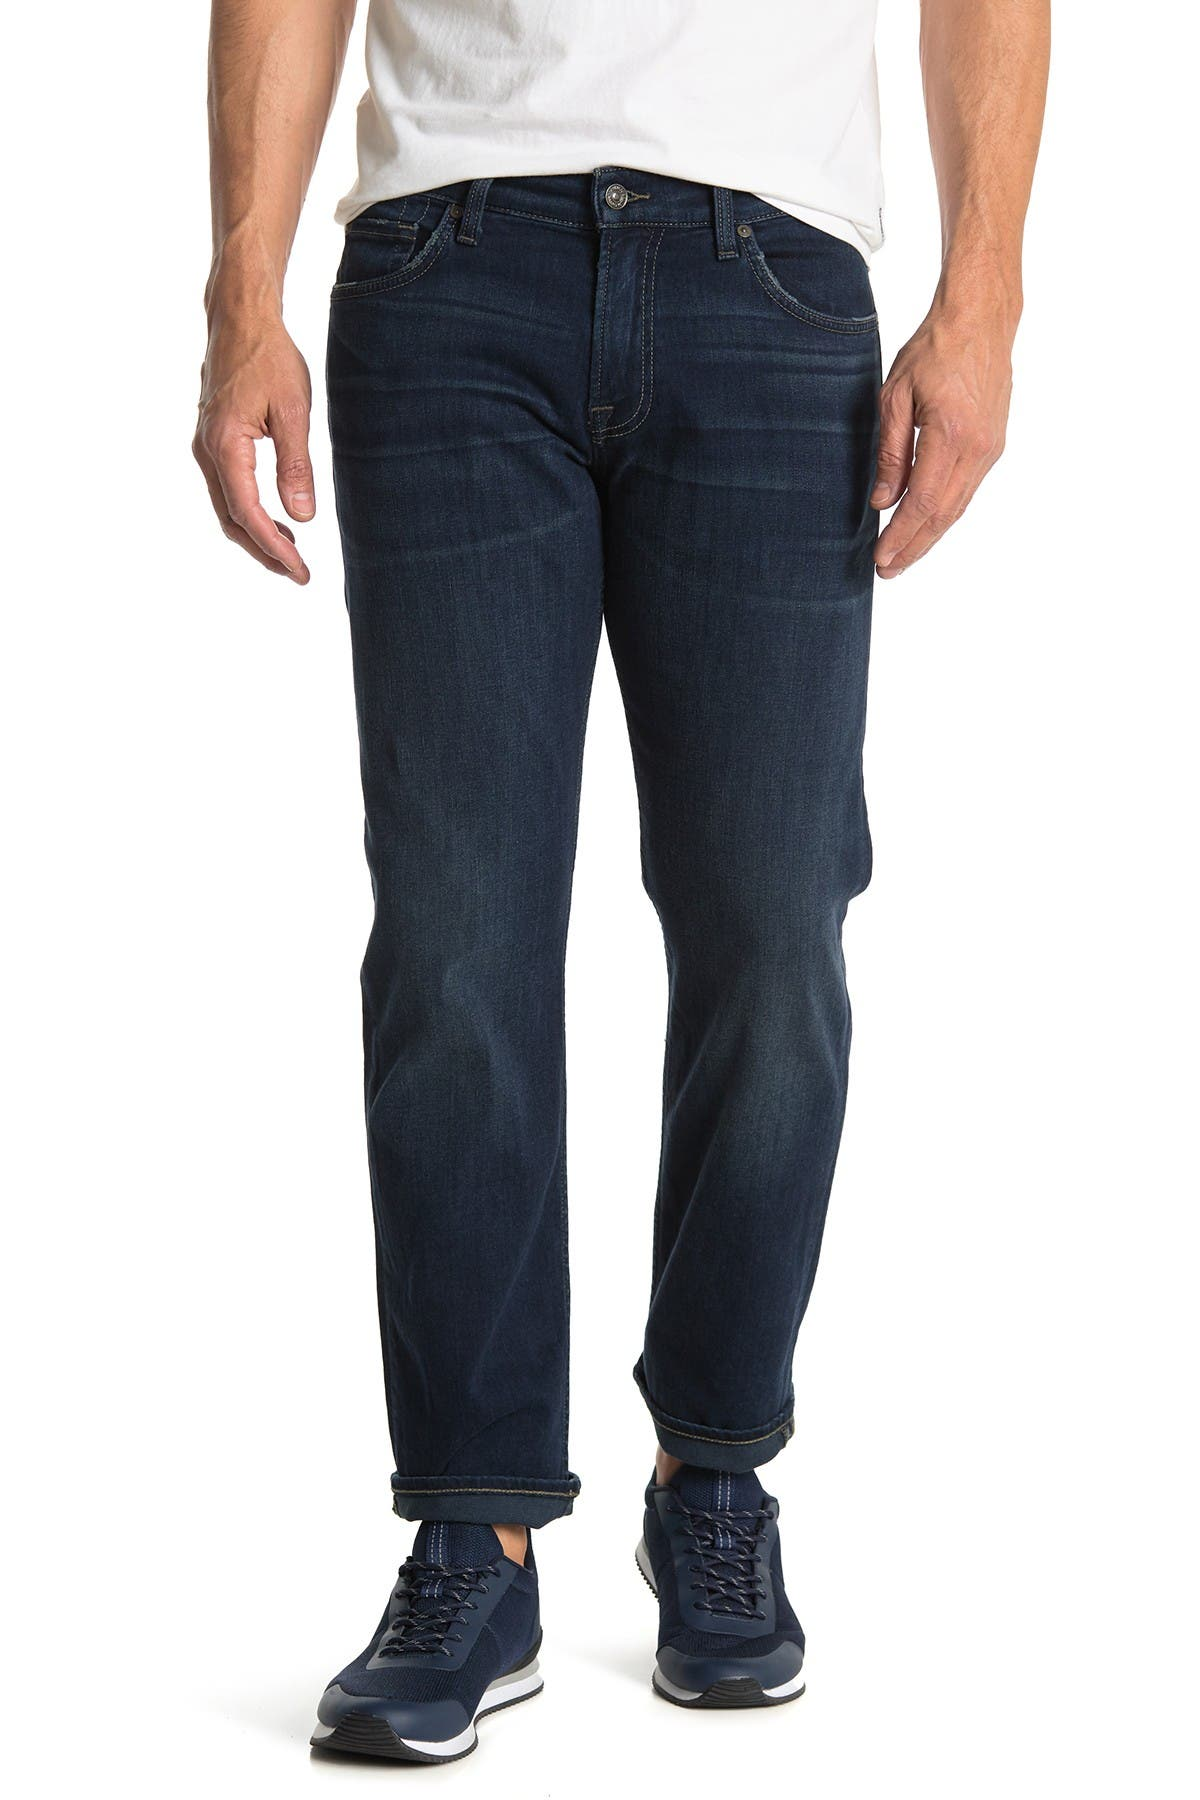 Image of 7 For All Mankind Standard Straight Jeans